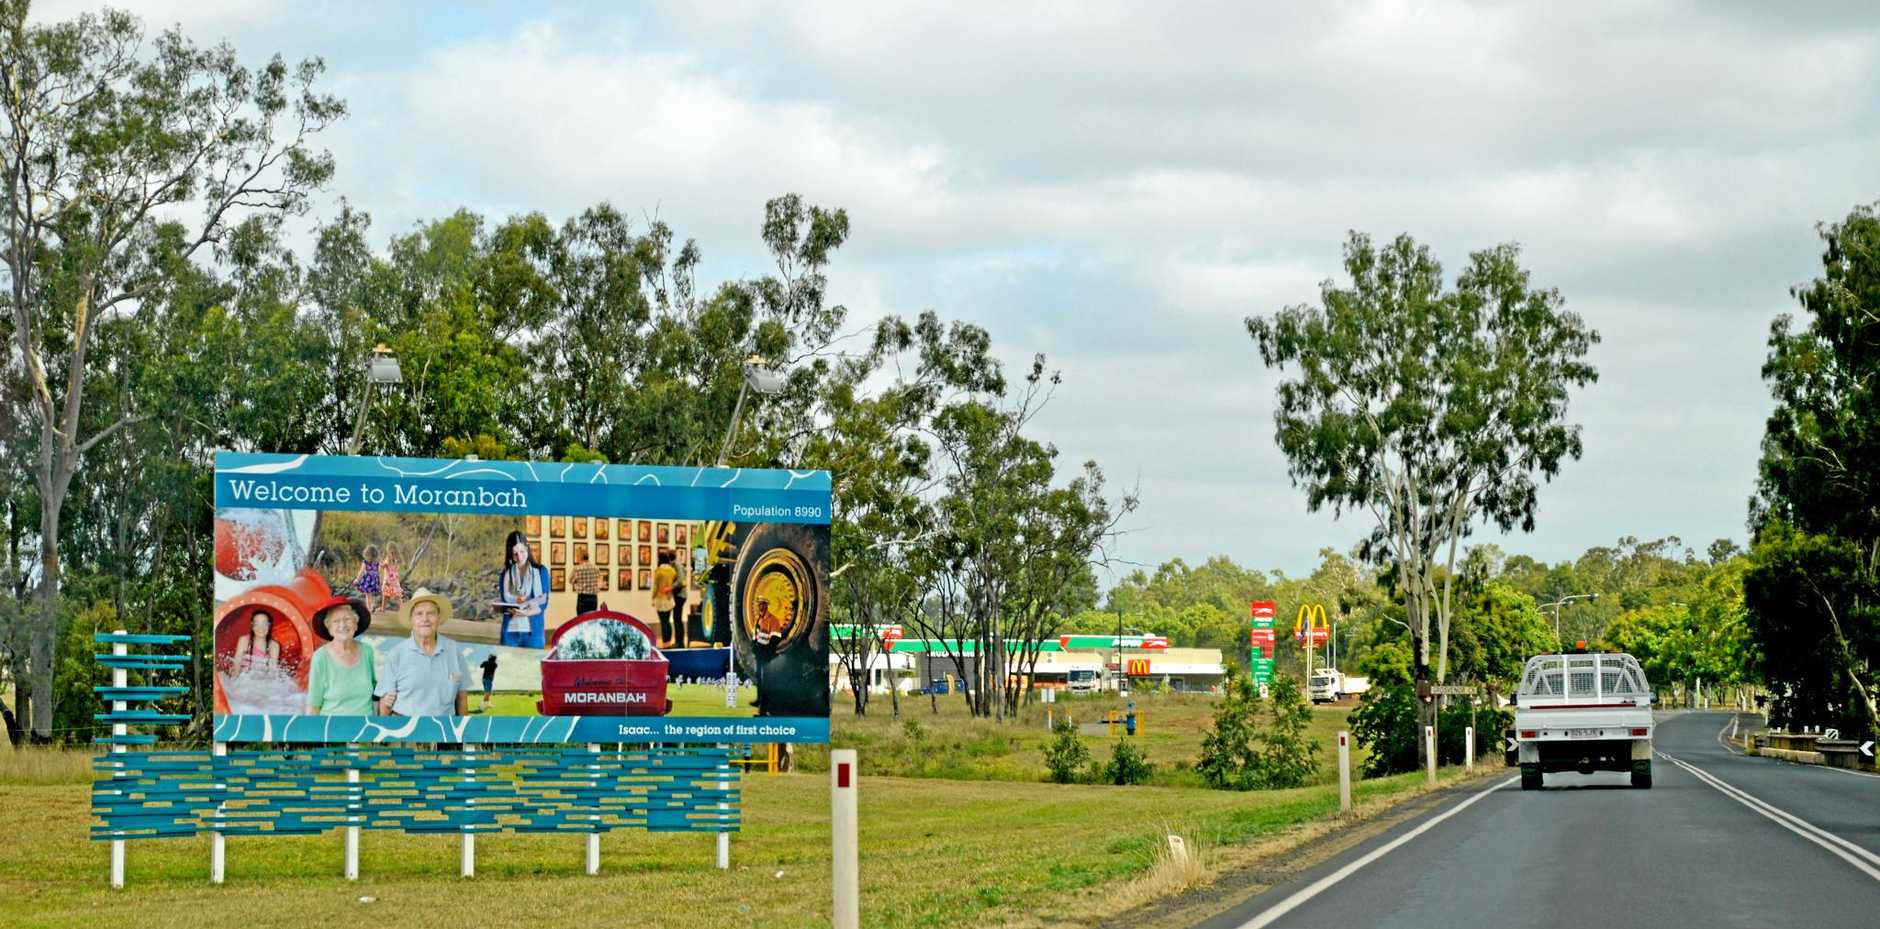 Moranbah had a population decline of just 2.3% in the past five years